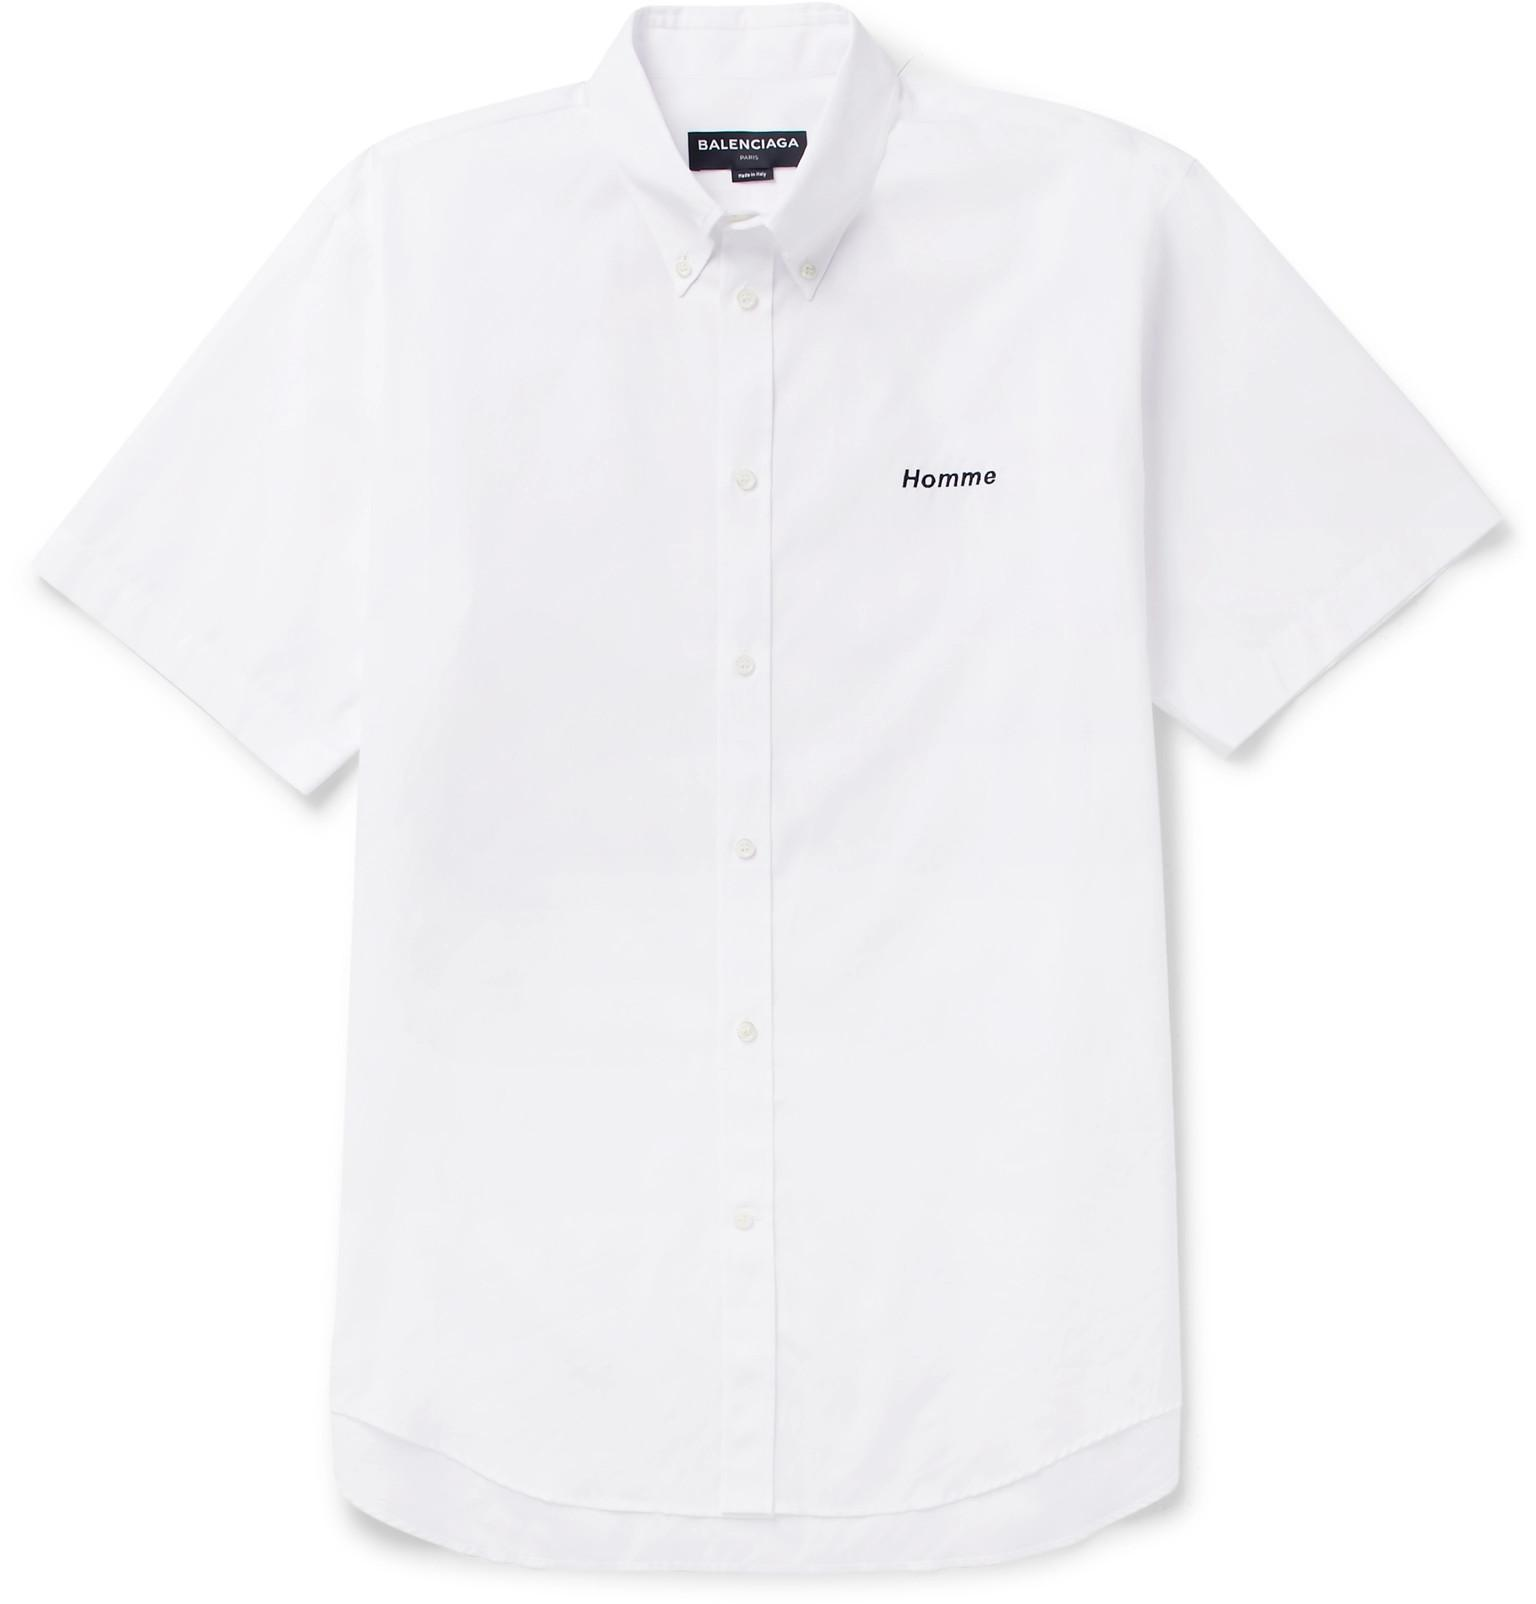 Cheap Sale Pay With Visa Oversized Button-down Collar Embroidered Cotton-poplin Shirt Balenciaga Shop Your Own Cheap Prices Reliable 8RGu3KN4